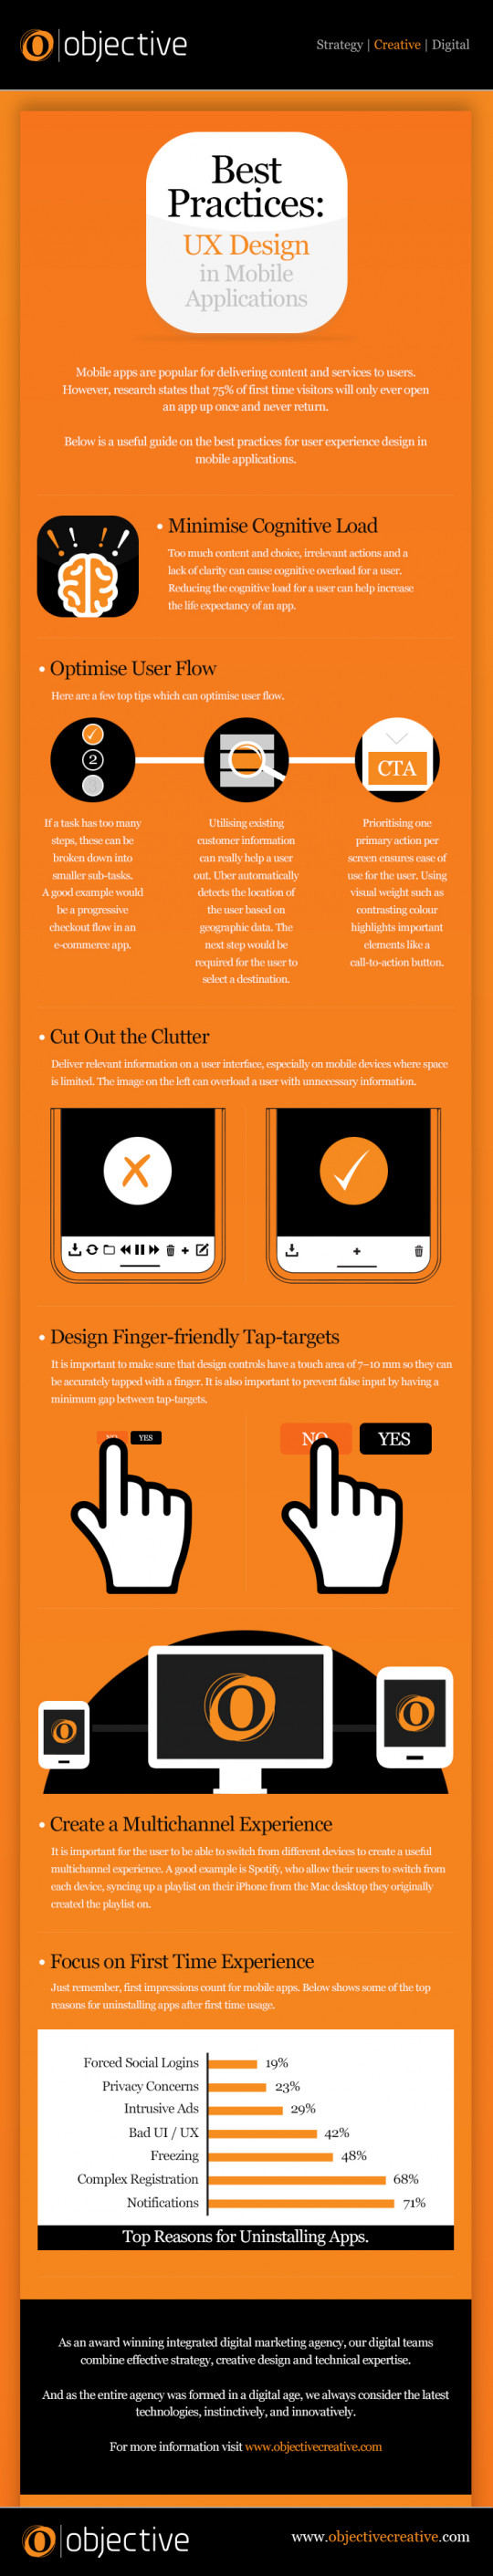 Best Practices: UX Design in Mobile Applications